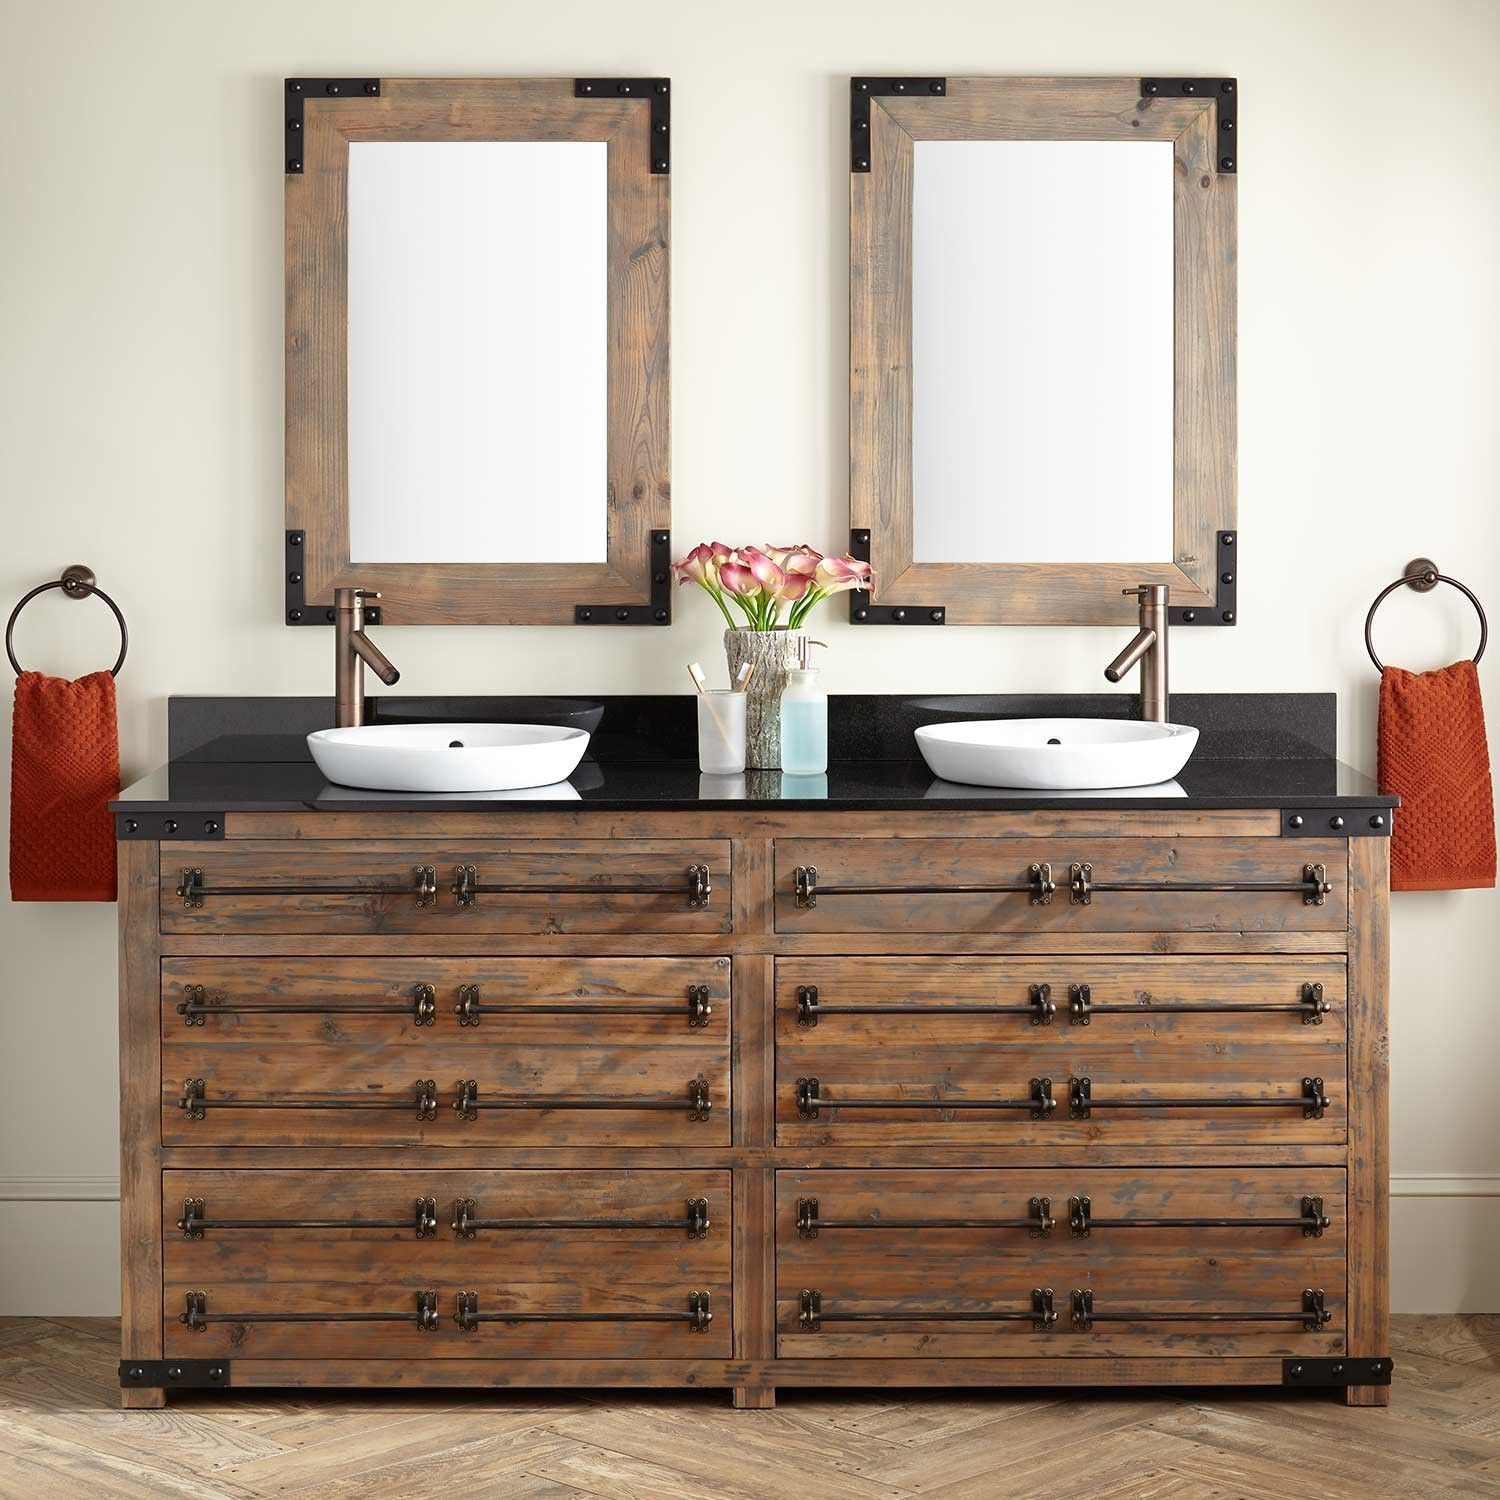 72 Bonner Reclaimed Wood Double Vanity For Semi Recessed Sink Gray Wash Pine Vanities Bathroom